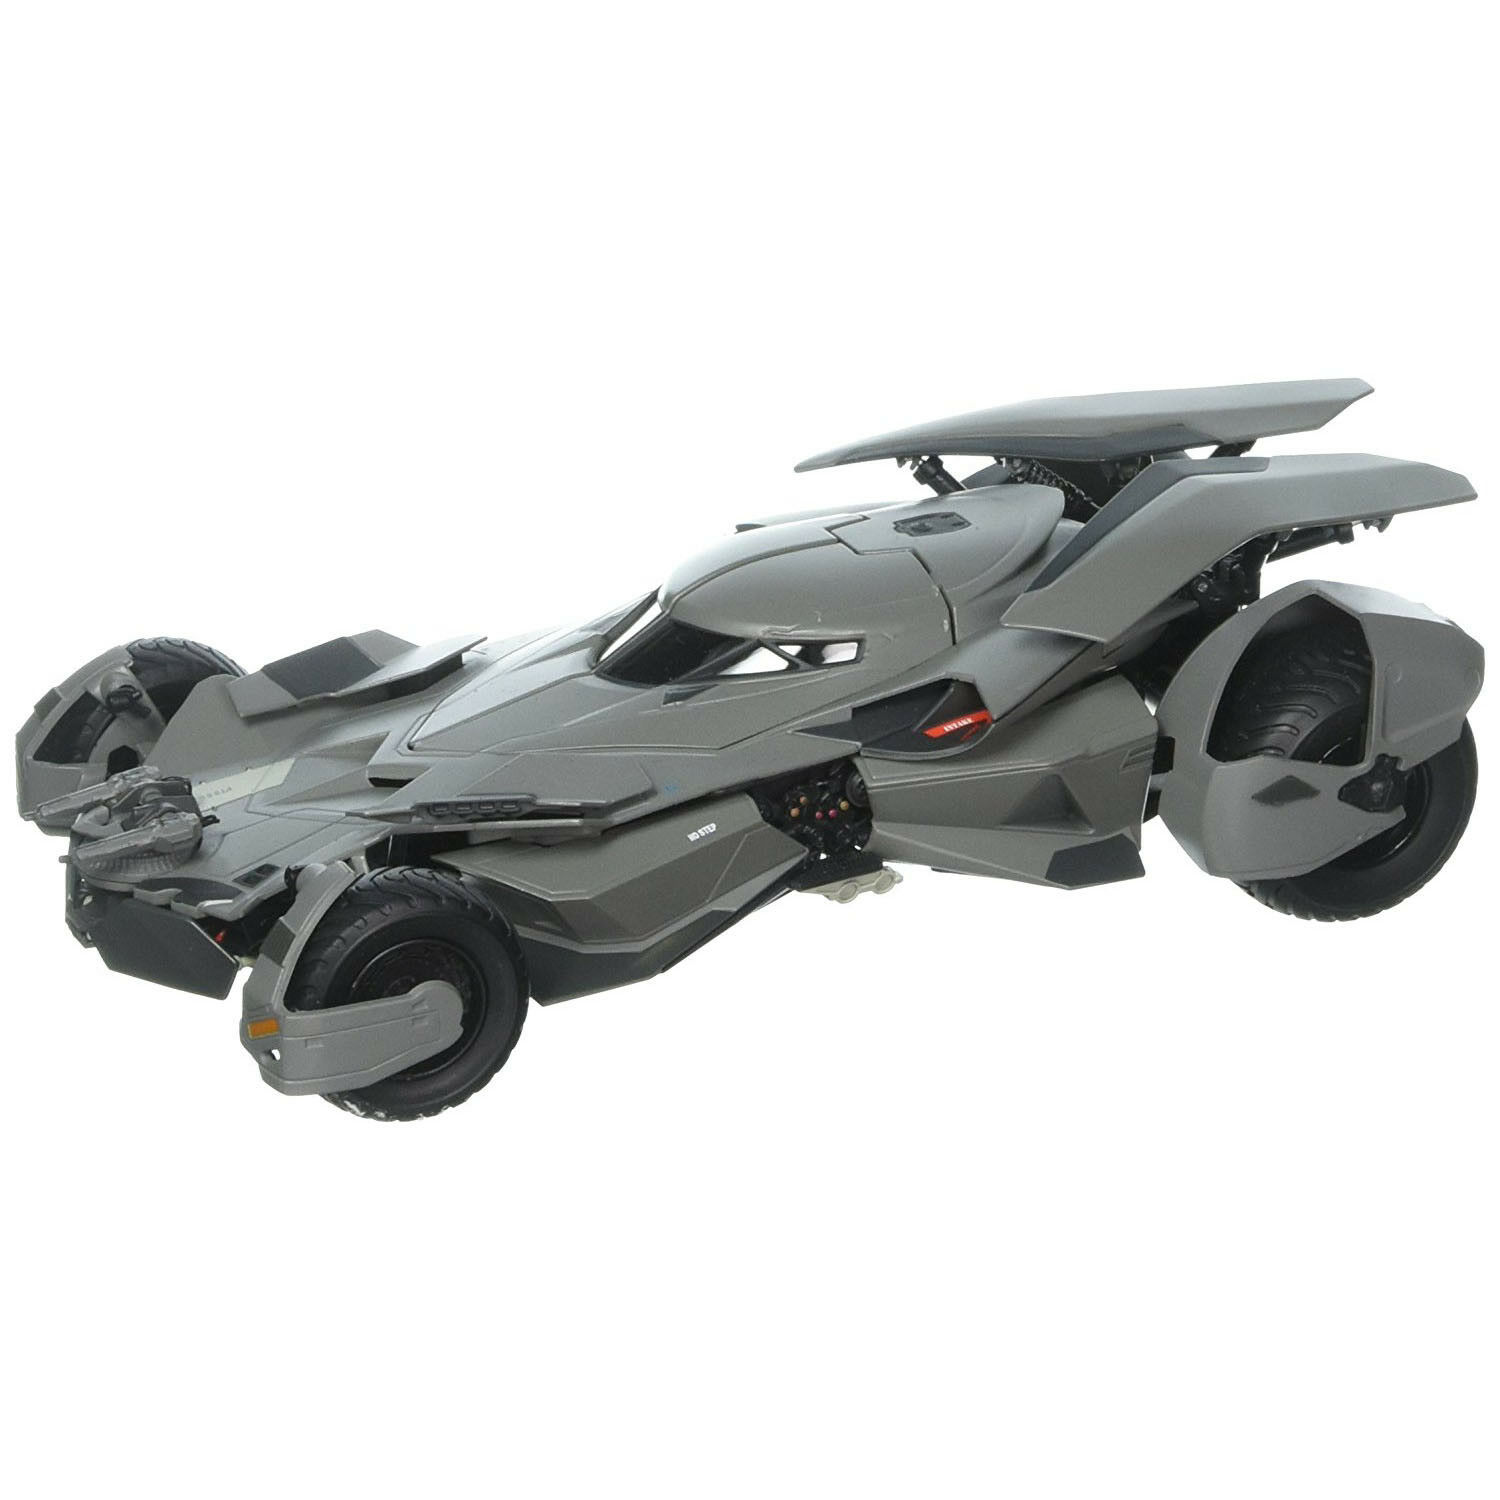 Hot Wheels Elite Batman Dawn of Justice Batmobile Die-cast Vehicle (1 18 Scale)